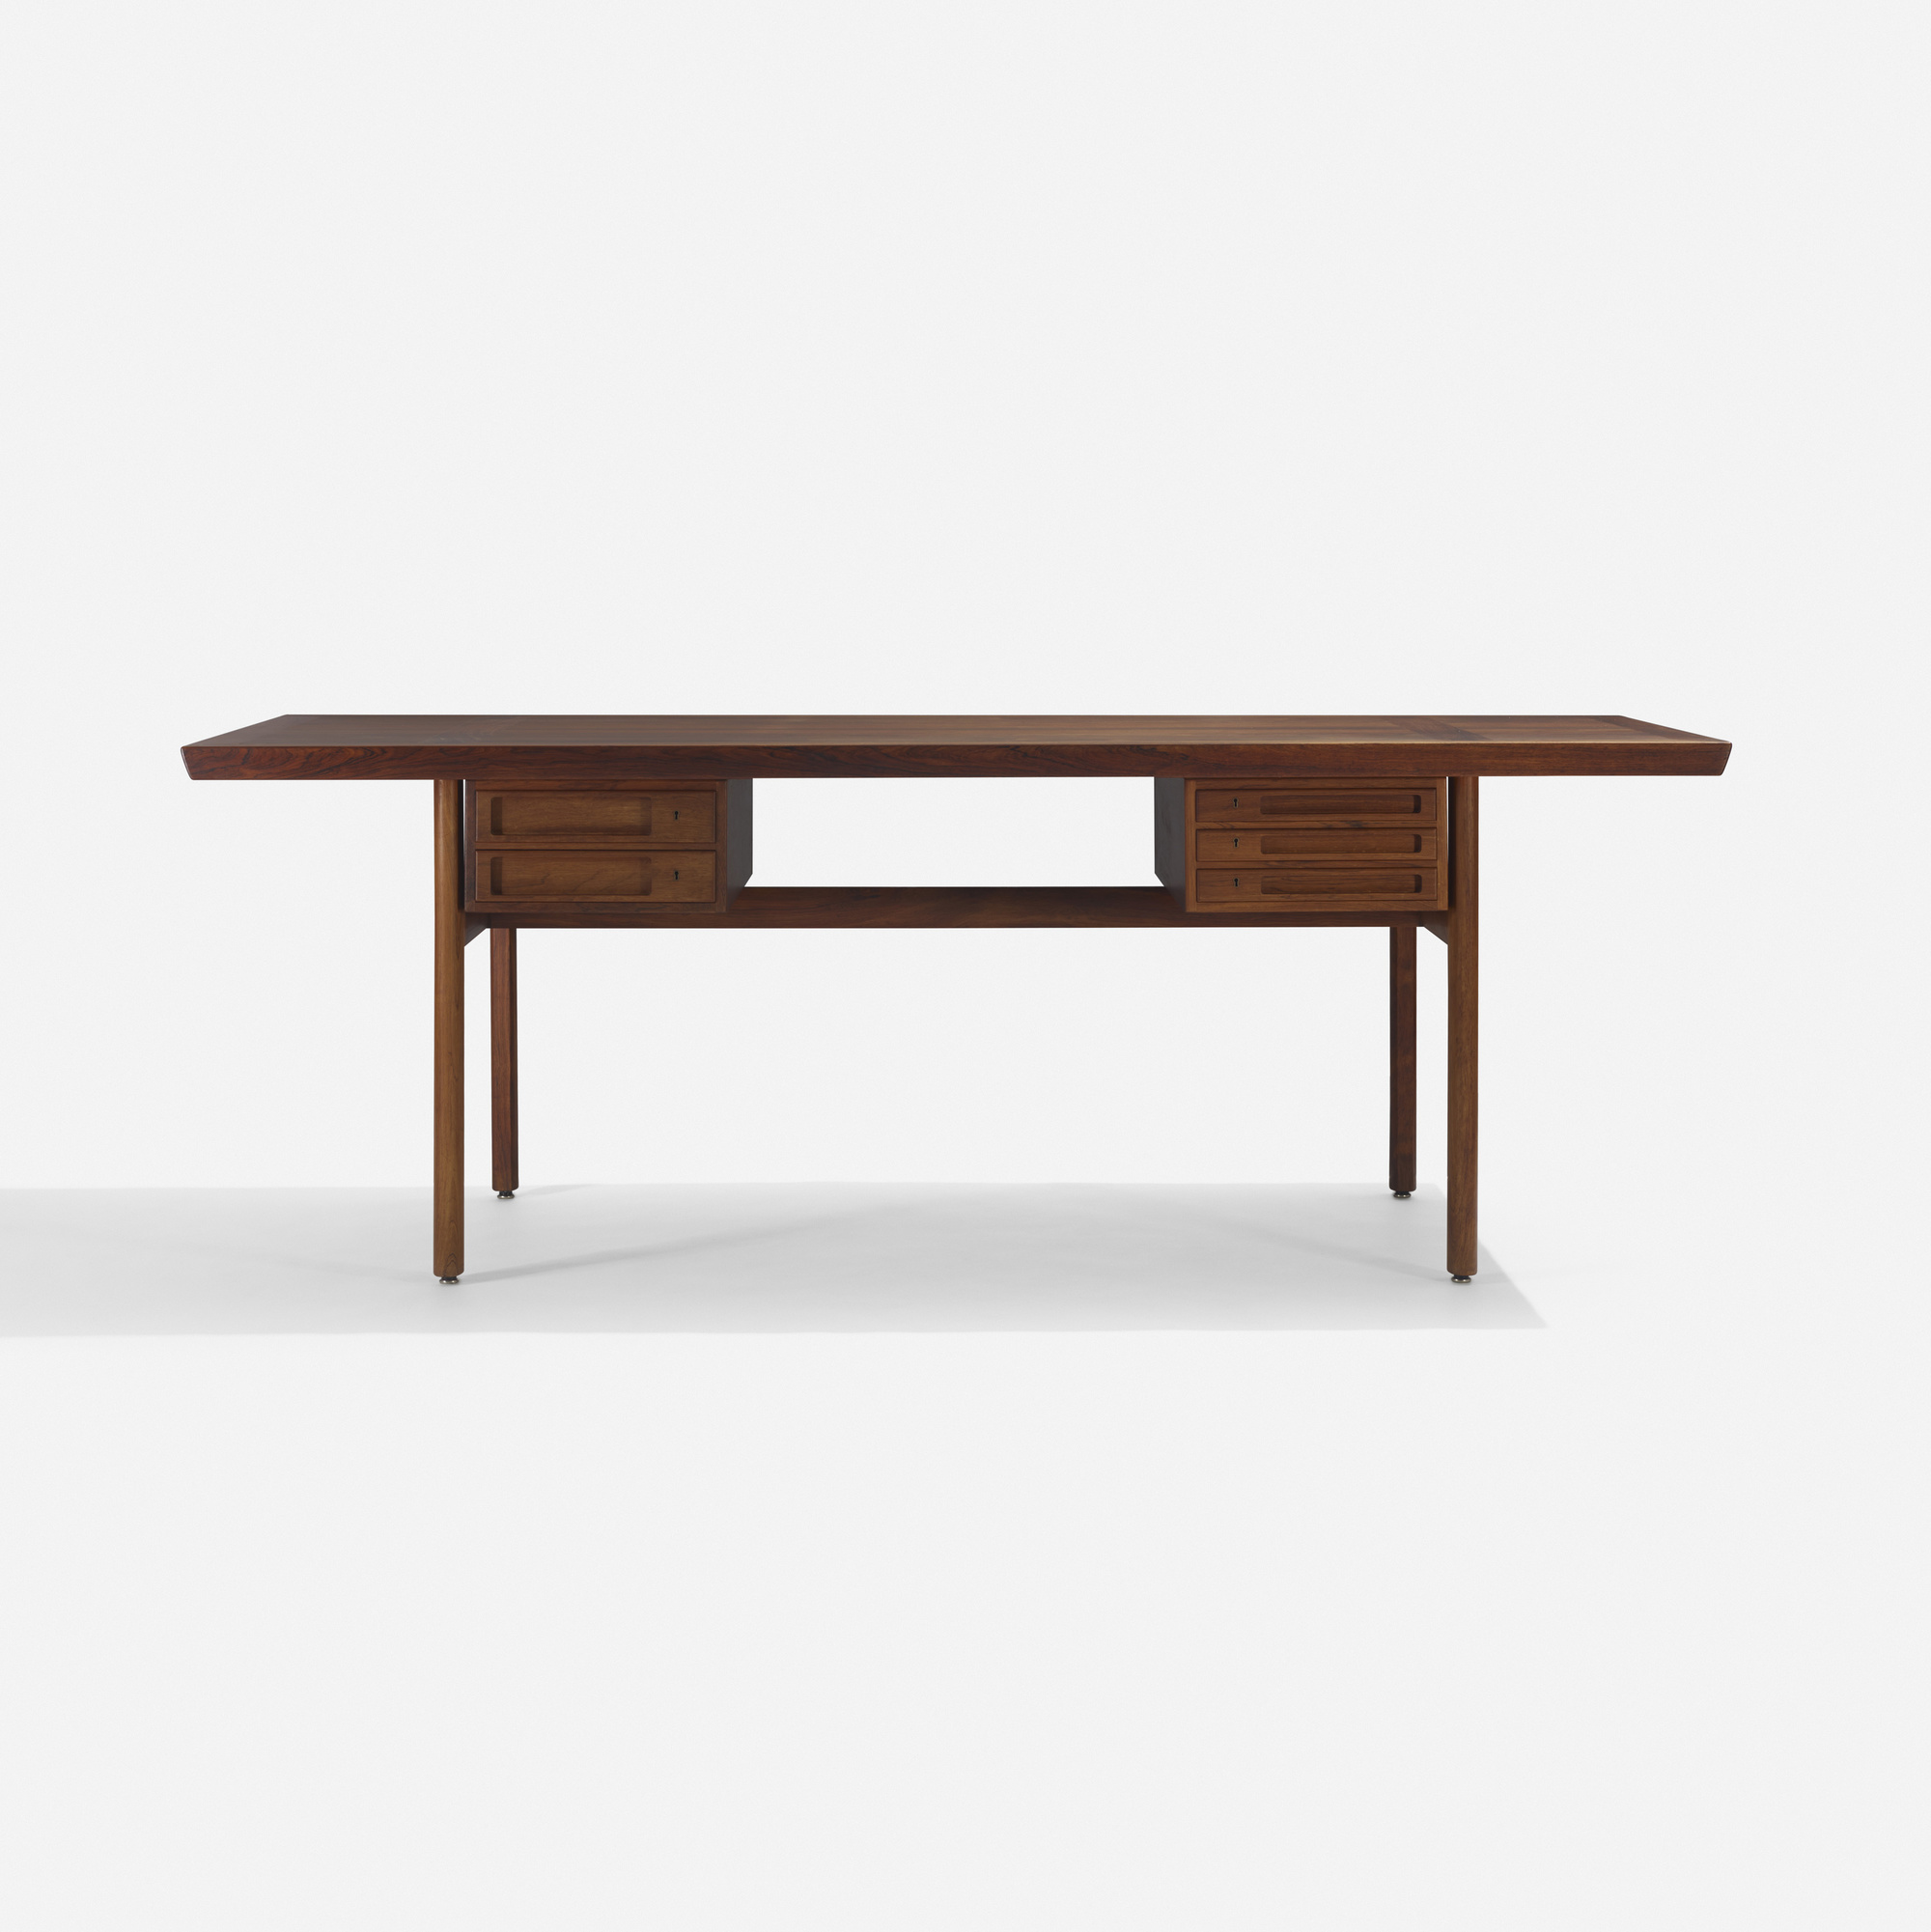 302: Peter Hvidt and Orla Mølgaard-Nielsen / desk (1 of 2)